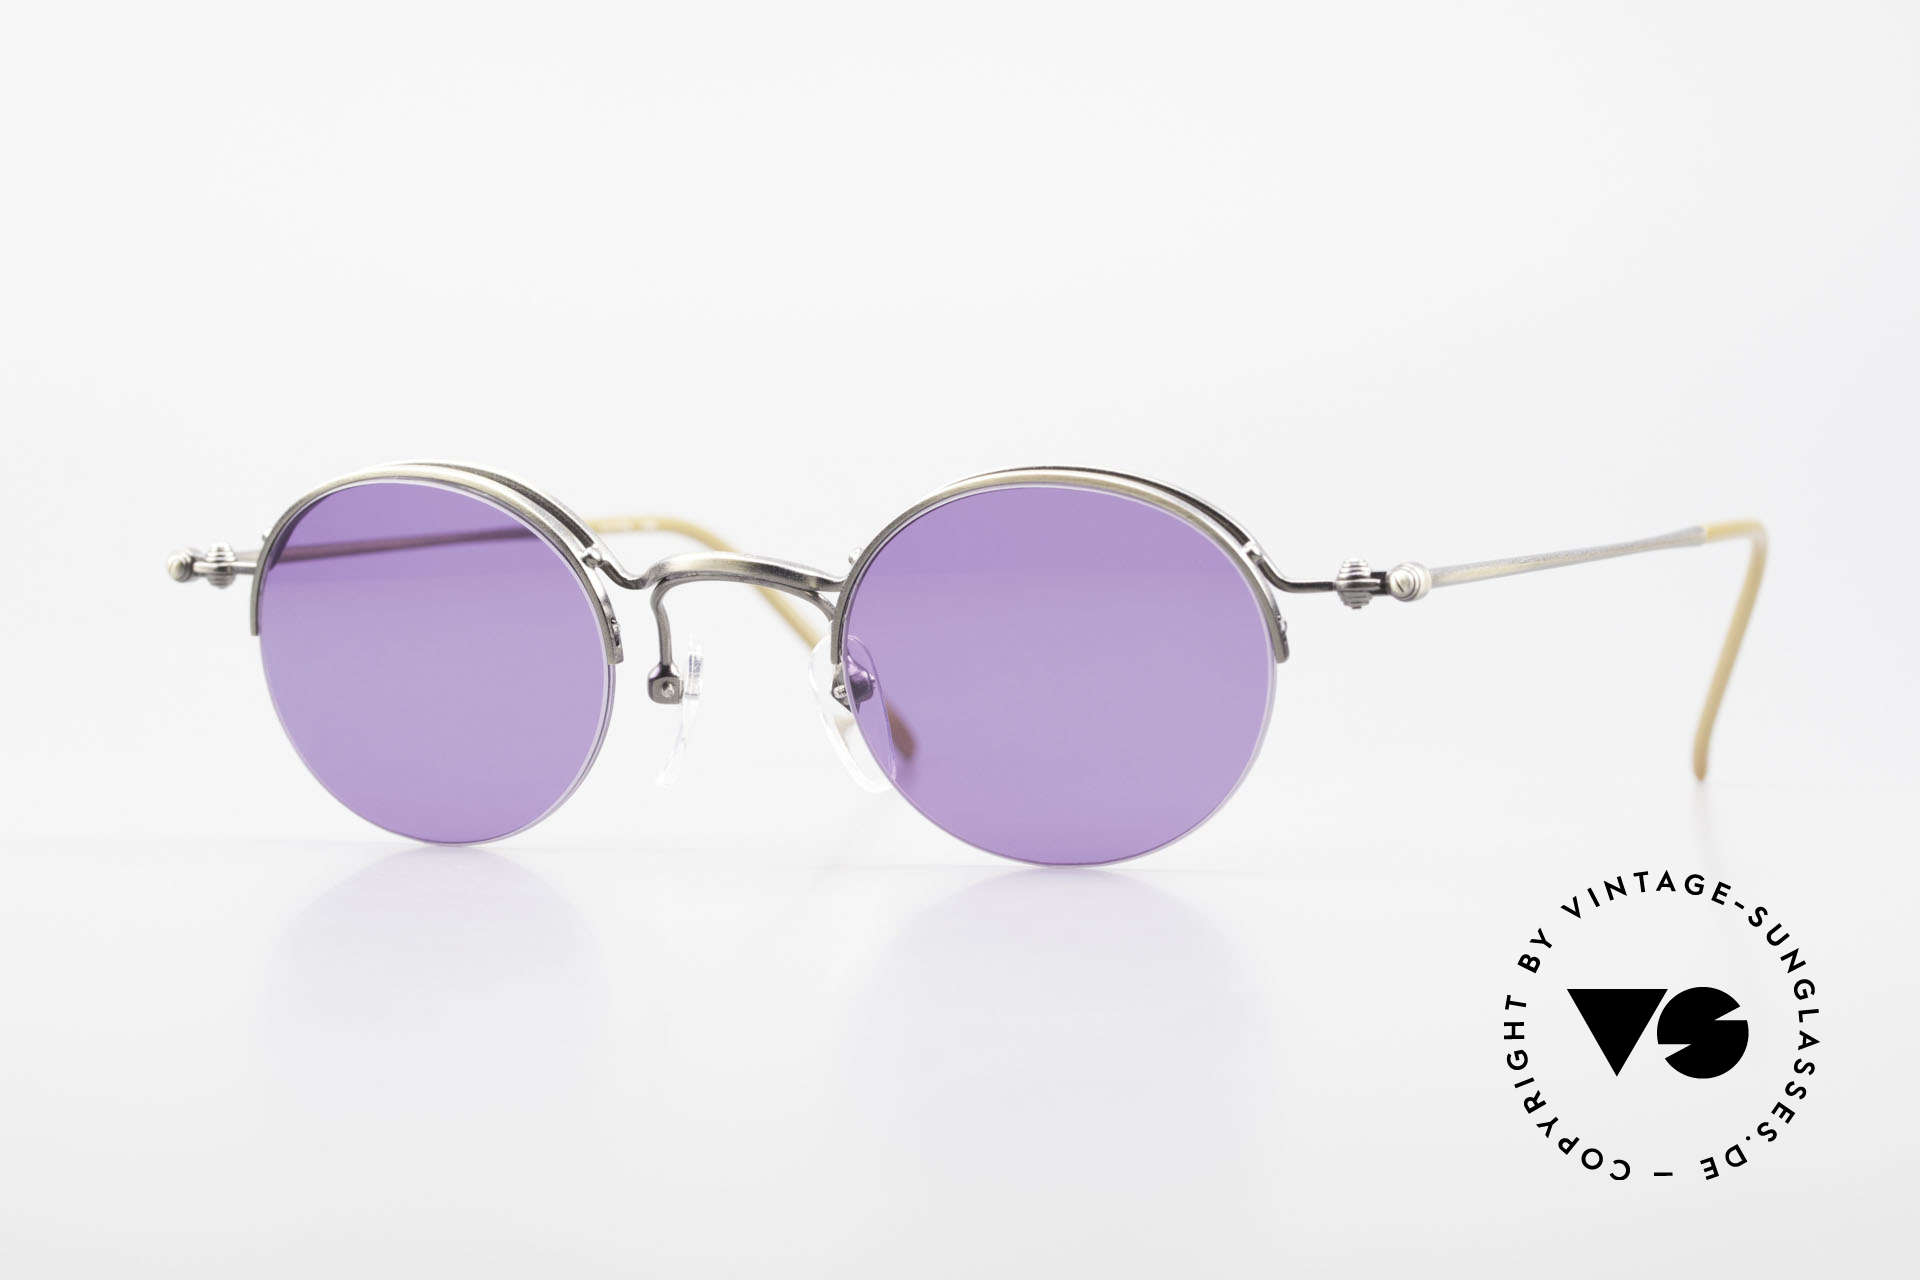 Jean Paul Gaultier 55-7108 Small Panto Sunglasses 90's, timeless Jean Paul GAULTIER designer sunglasses, Made for Men and Women